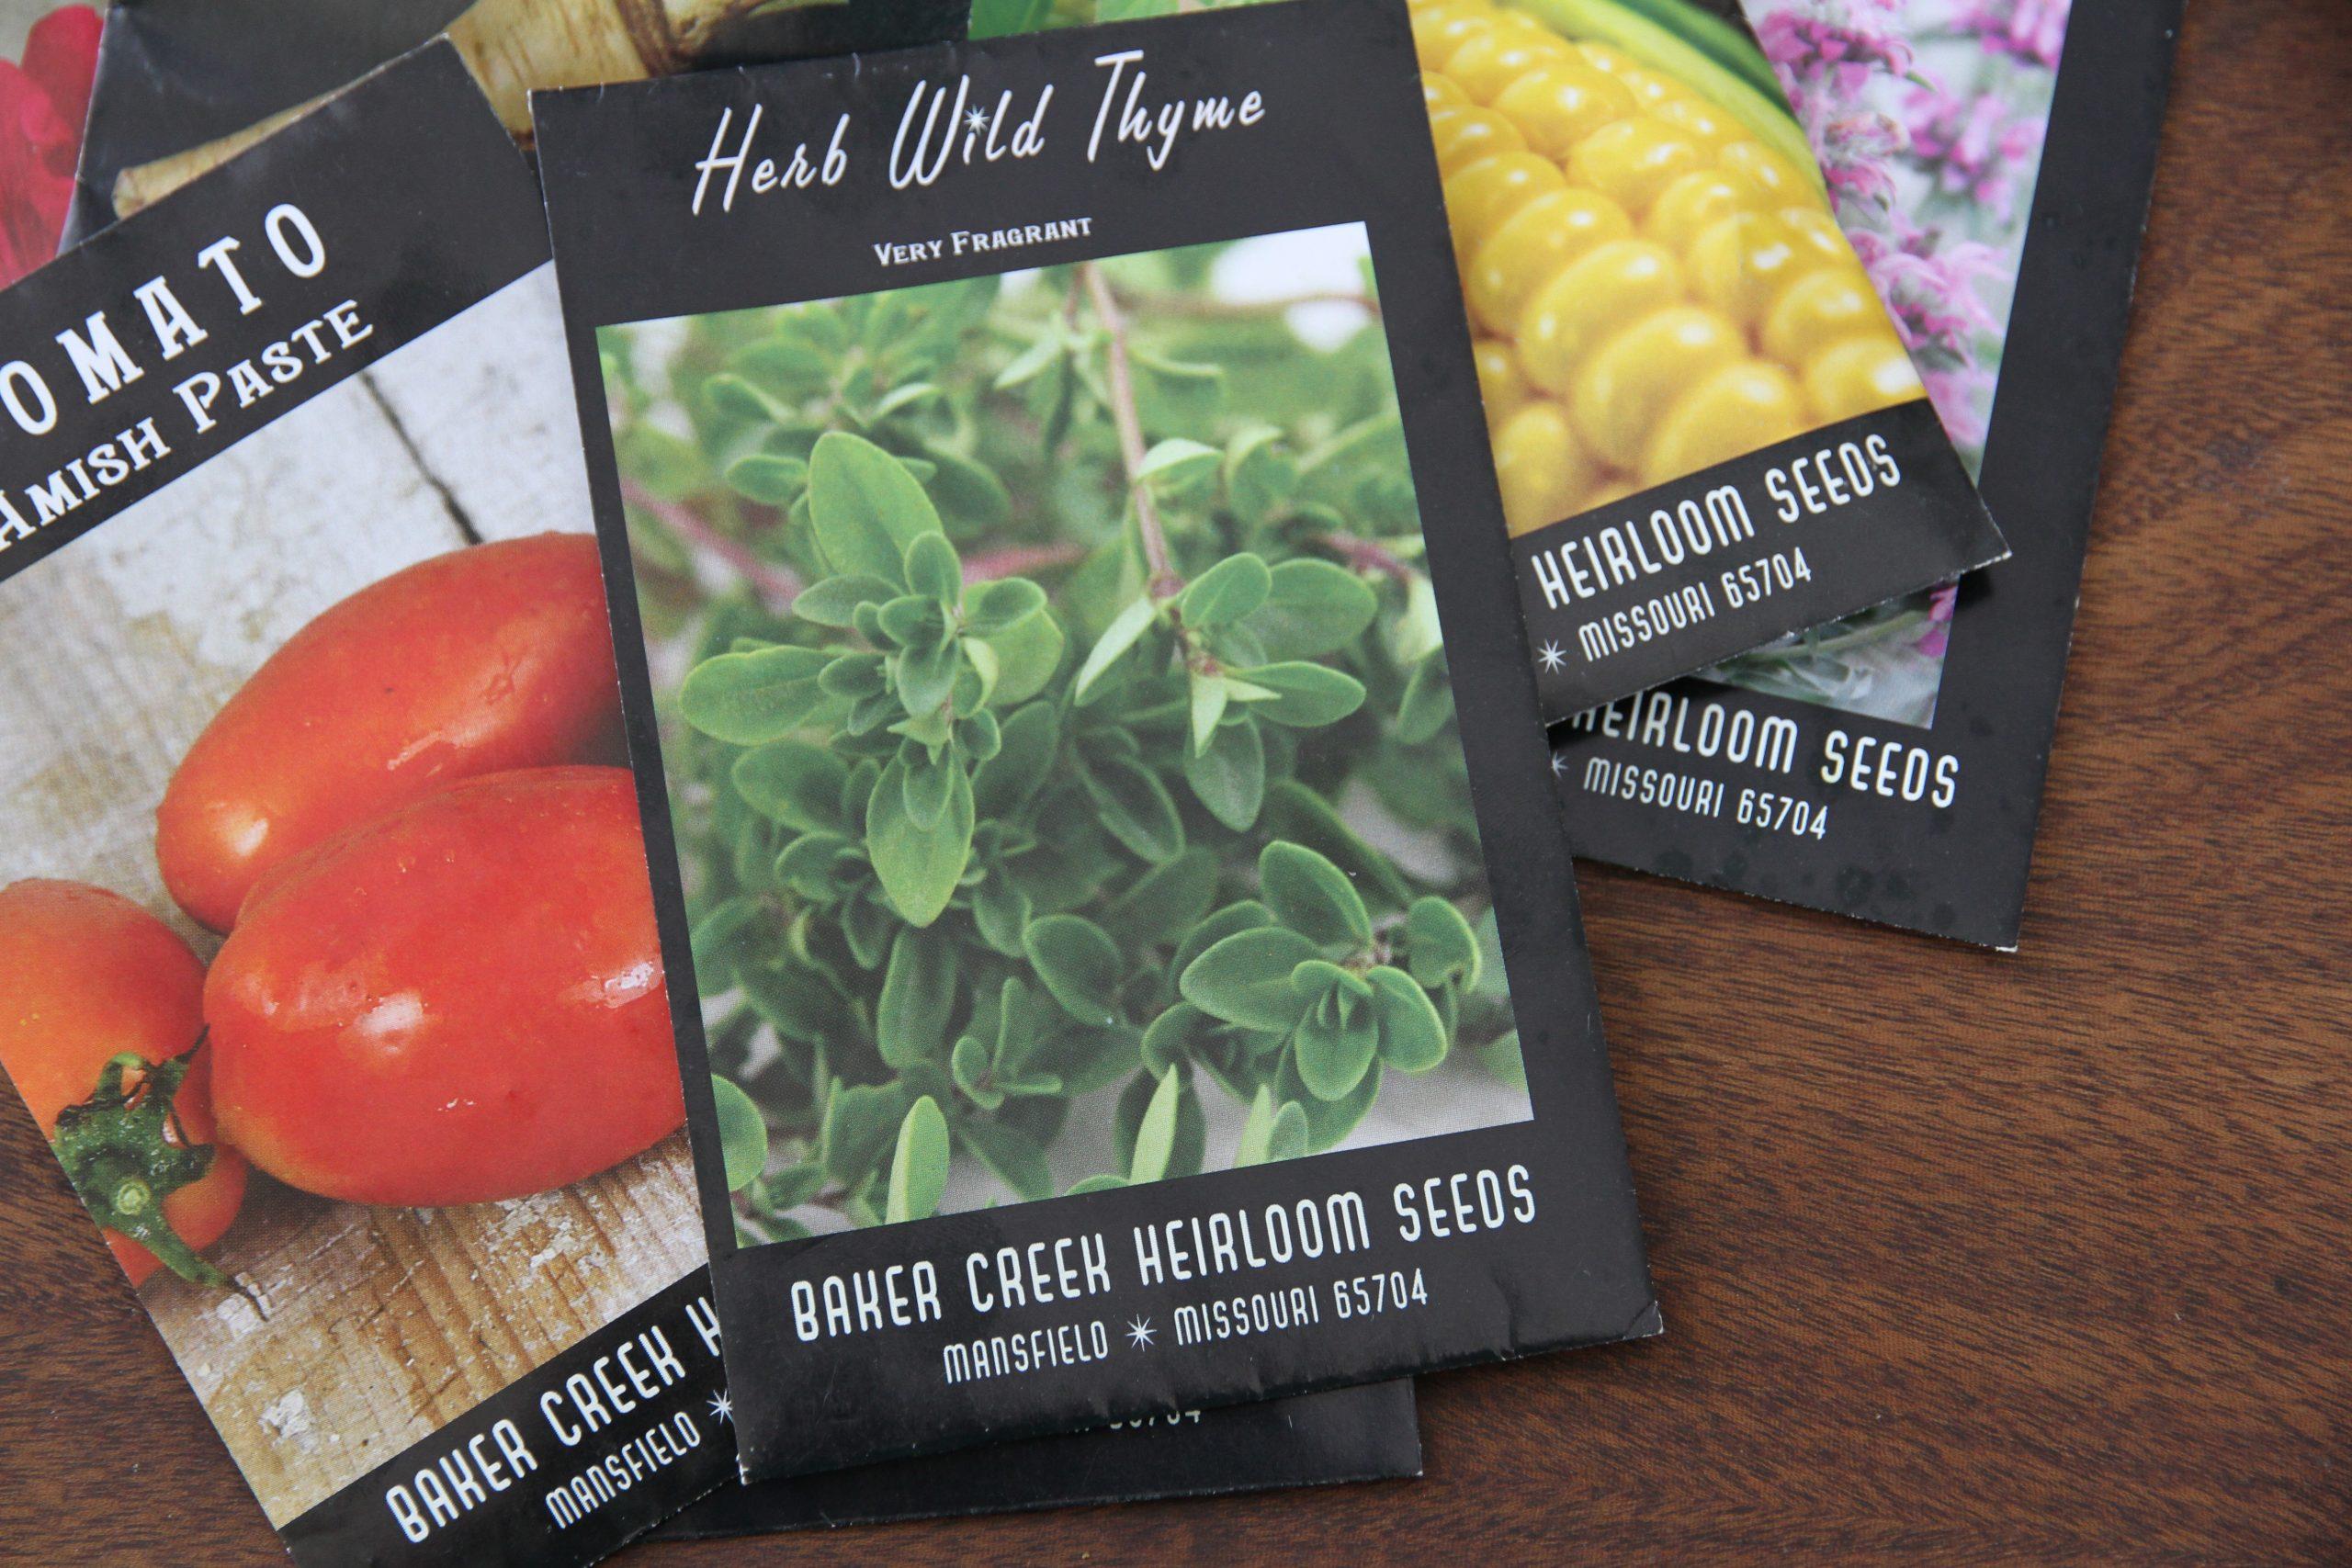 How to Choose Garden Seeds Based on Your Harvest Needs